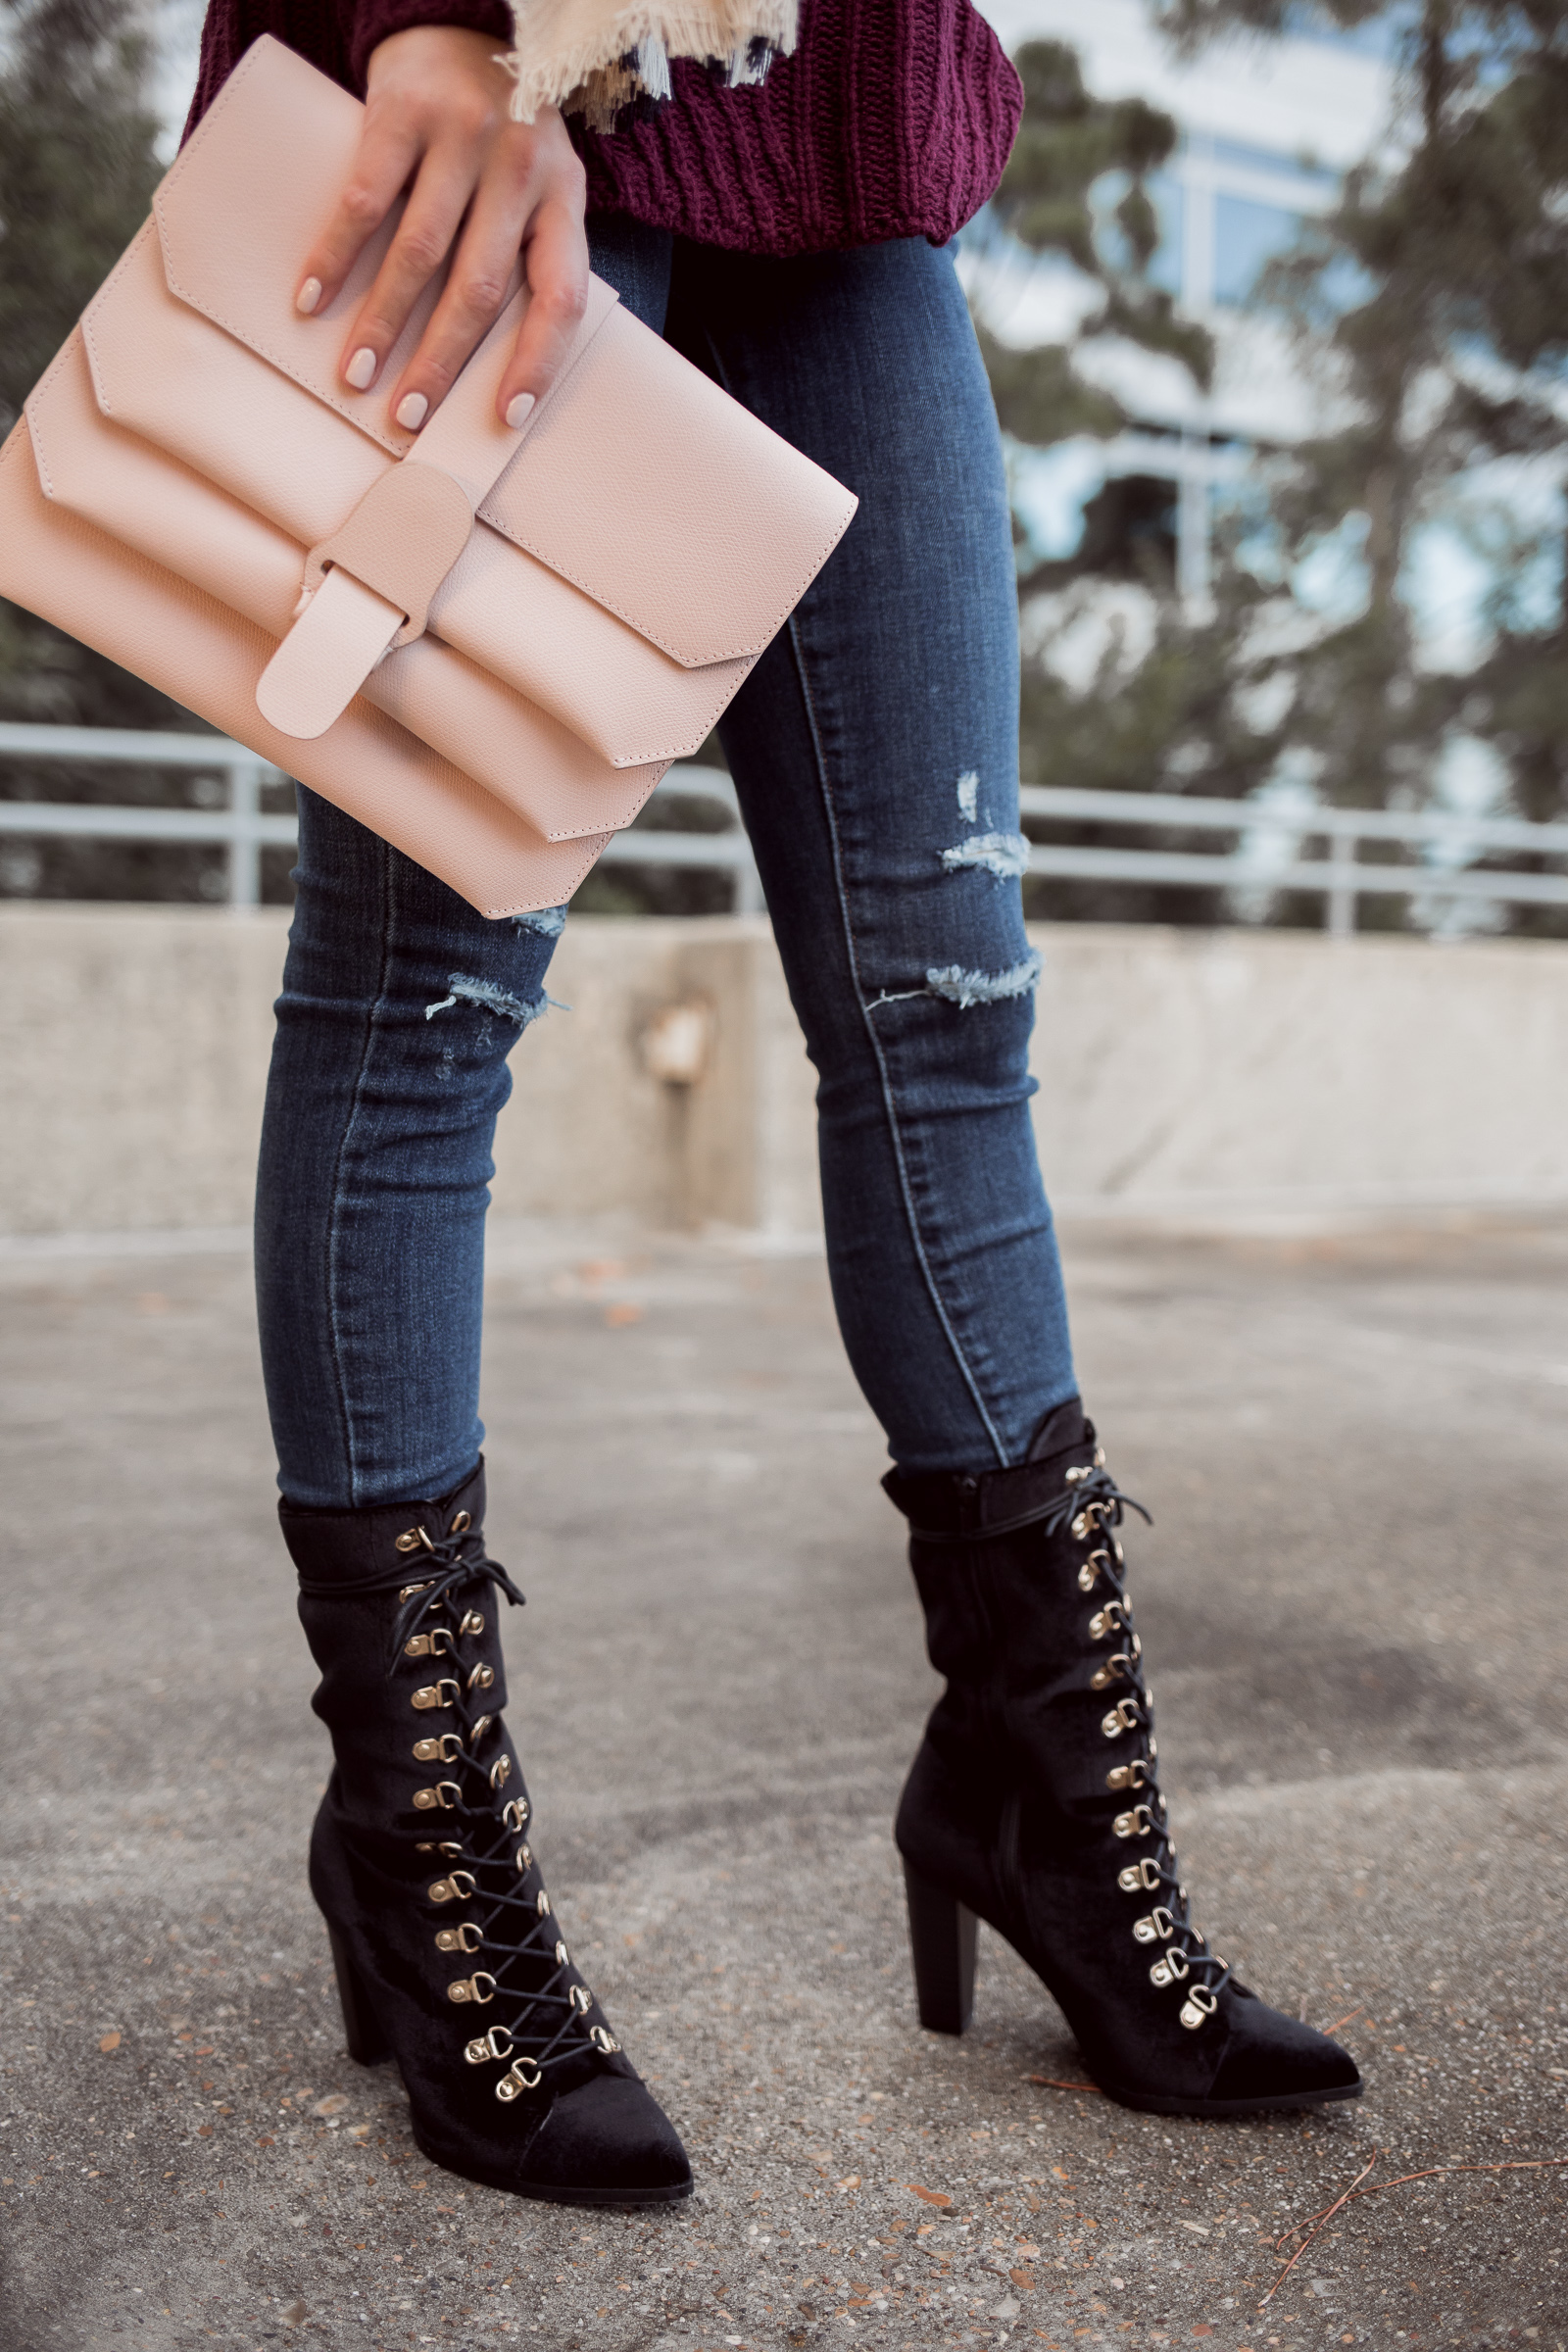 Houston Fashion blogger Uptown with Elly Brown wears a lace up mid-calf boot for fall